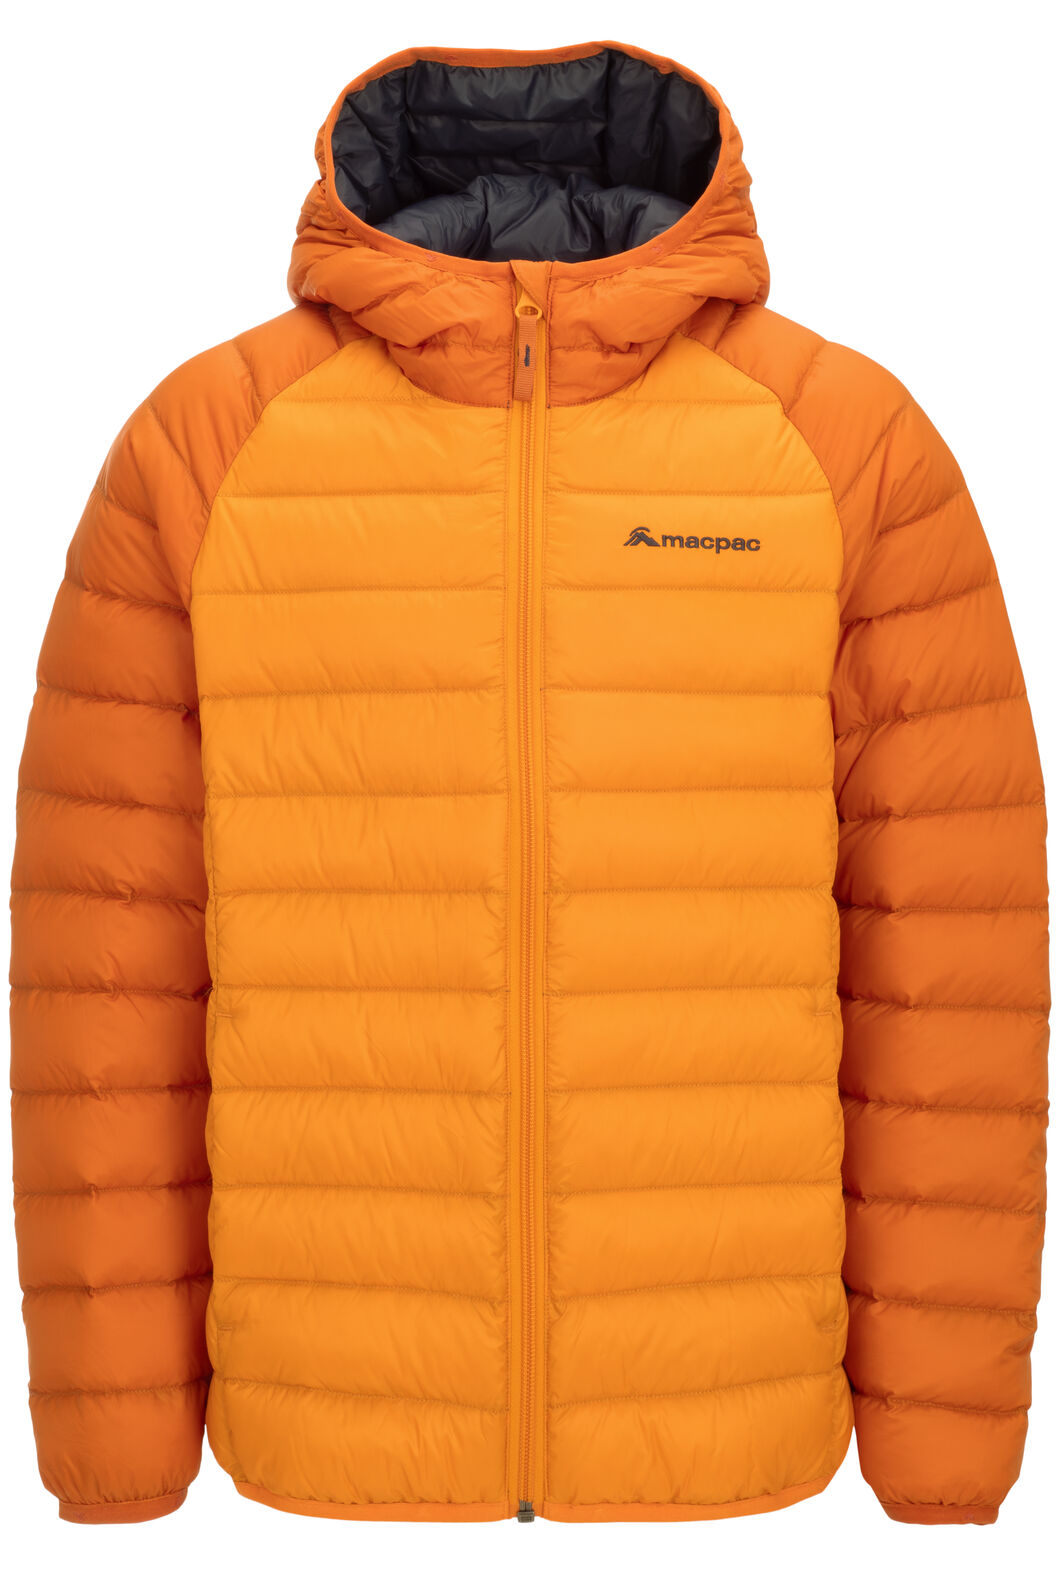 Macpac Uber Light Hooded Down Jacket — Kids', Orange Flame/Russet Orange, hi-res